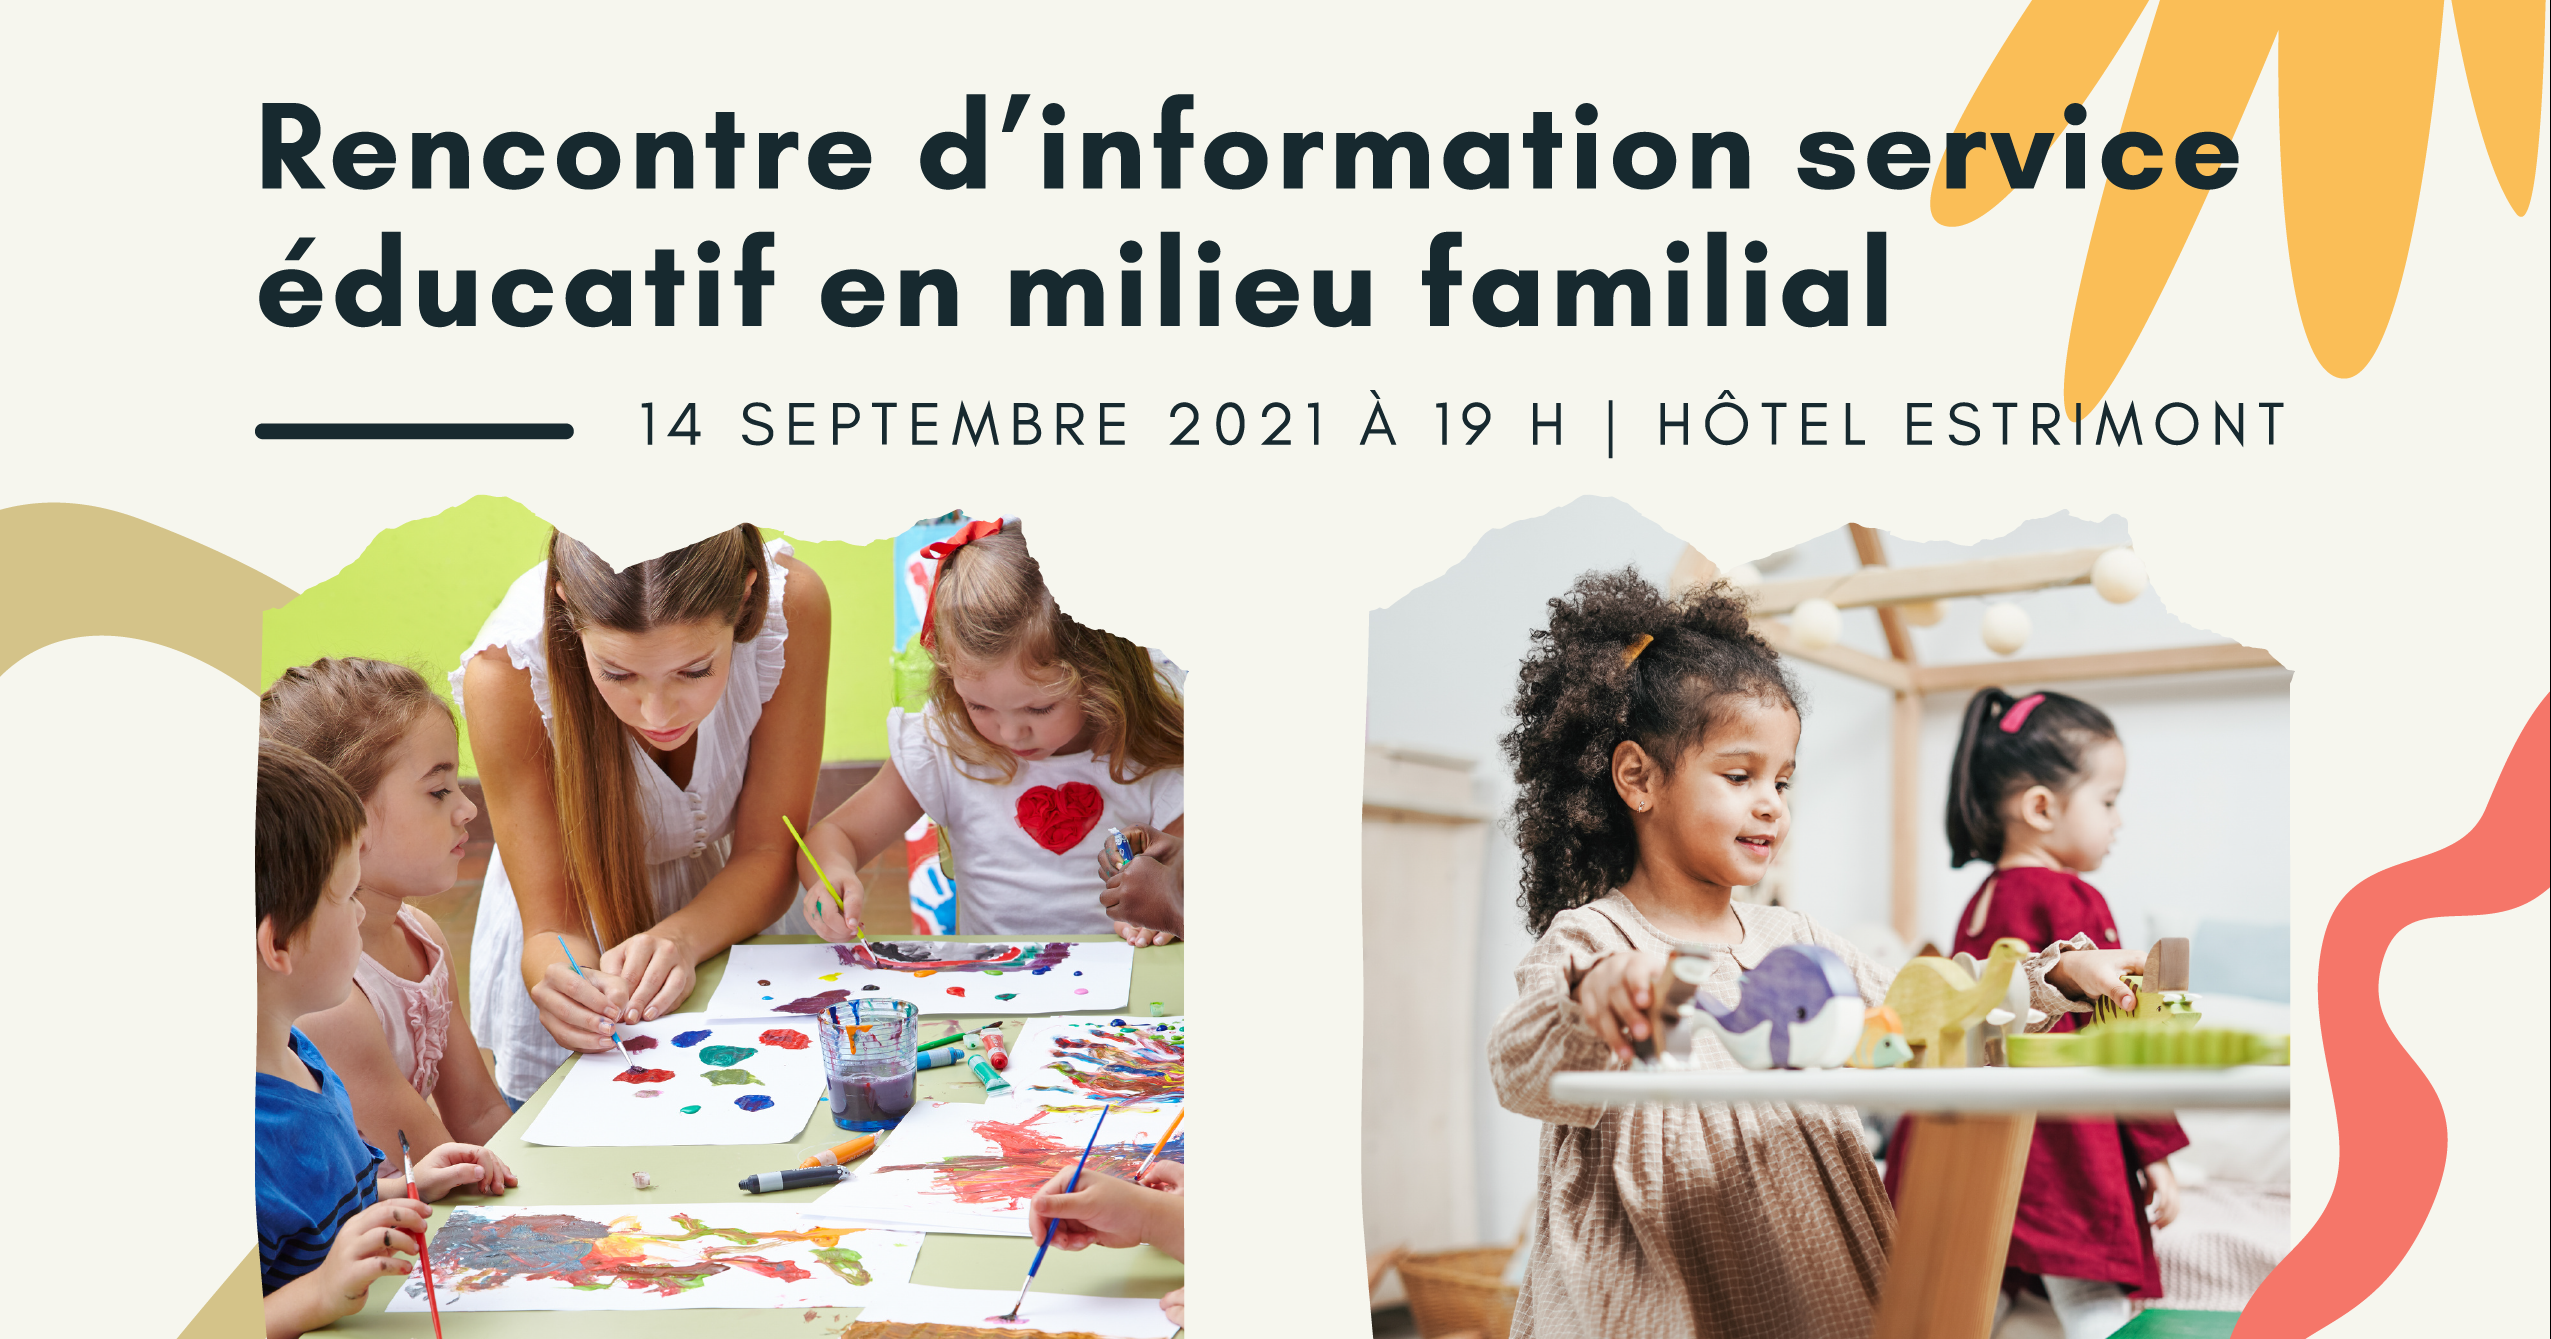 Family-based educational service information meeting